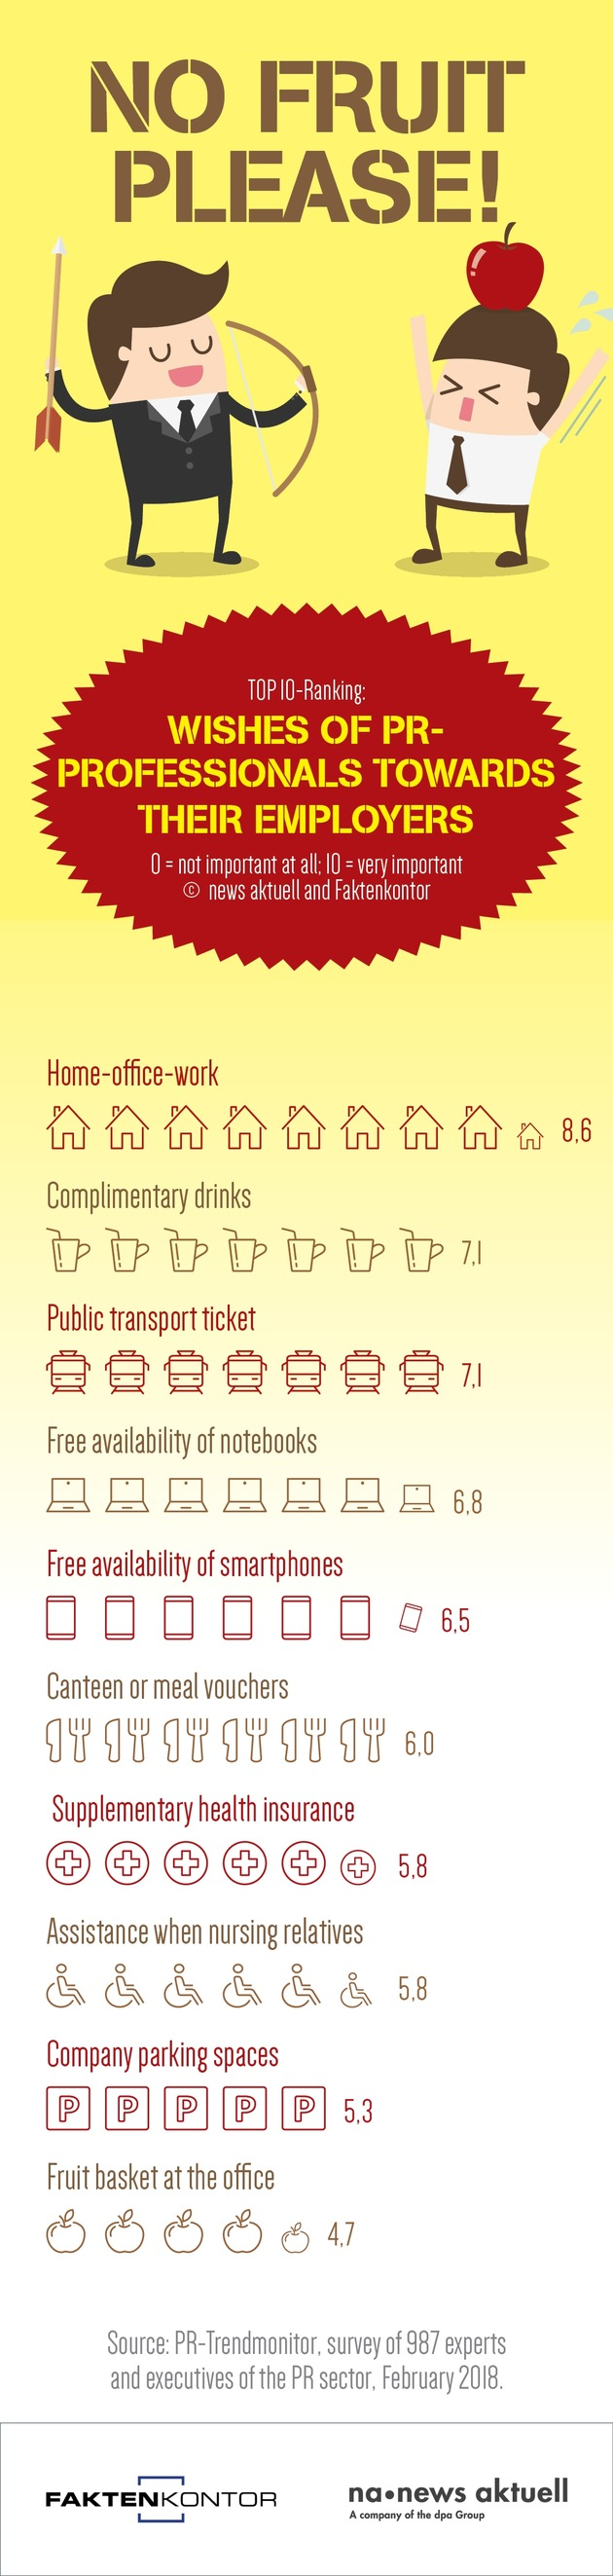 """Home office, free drinks and a public transport pass: These are the perks that German communicators desire most of all from their companies. dpa subsidiary news aktuell and Faktenkontor have conducted a survey among PR professionals and managers on what they expect from their employers in additional incentives apart from pay. Almost 990 communications professionals took part in the PR Trend Monitor.Editorial use of this picture is free of charge. Please quote the source: """"obs /news aktuell GmbH"""""""